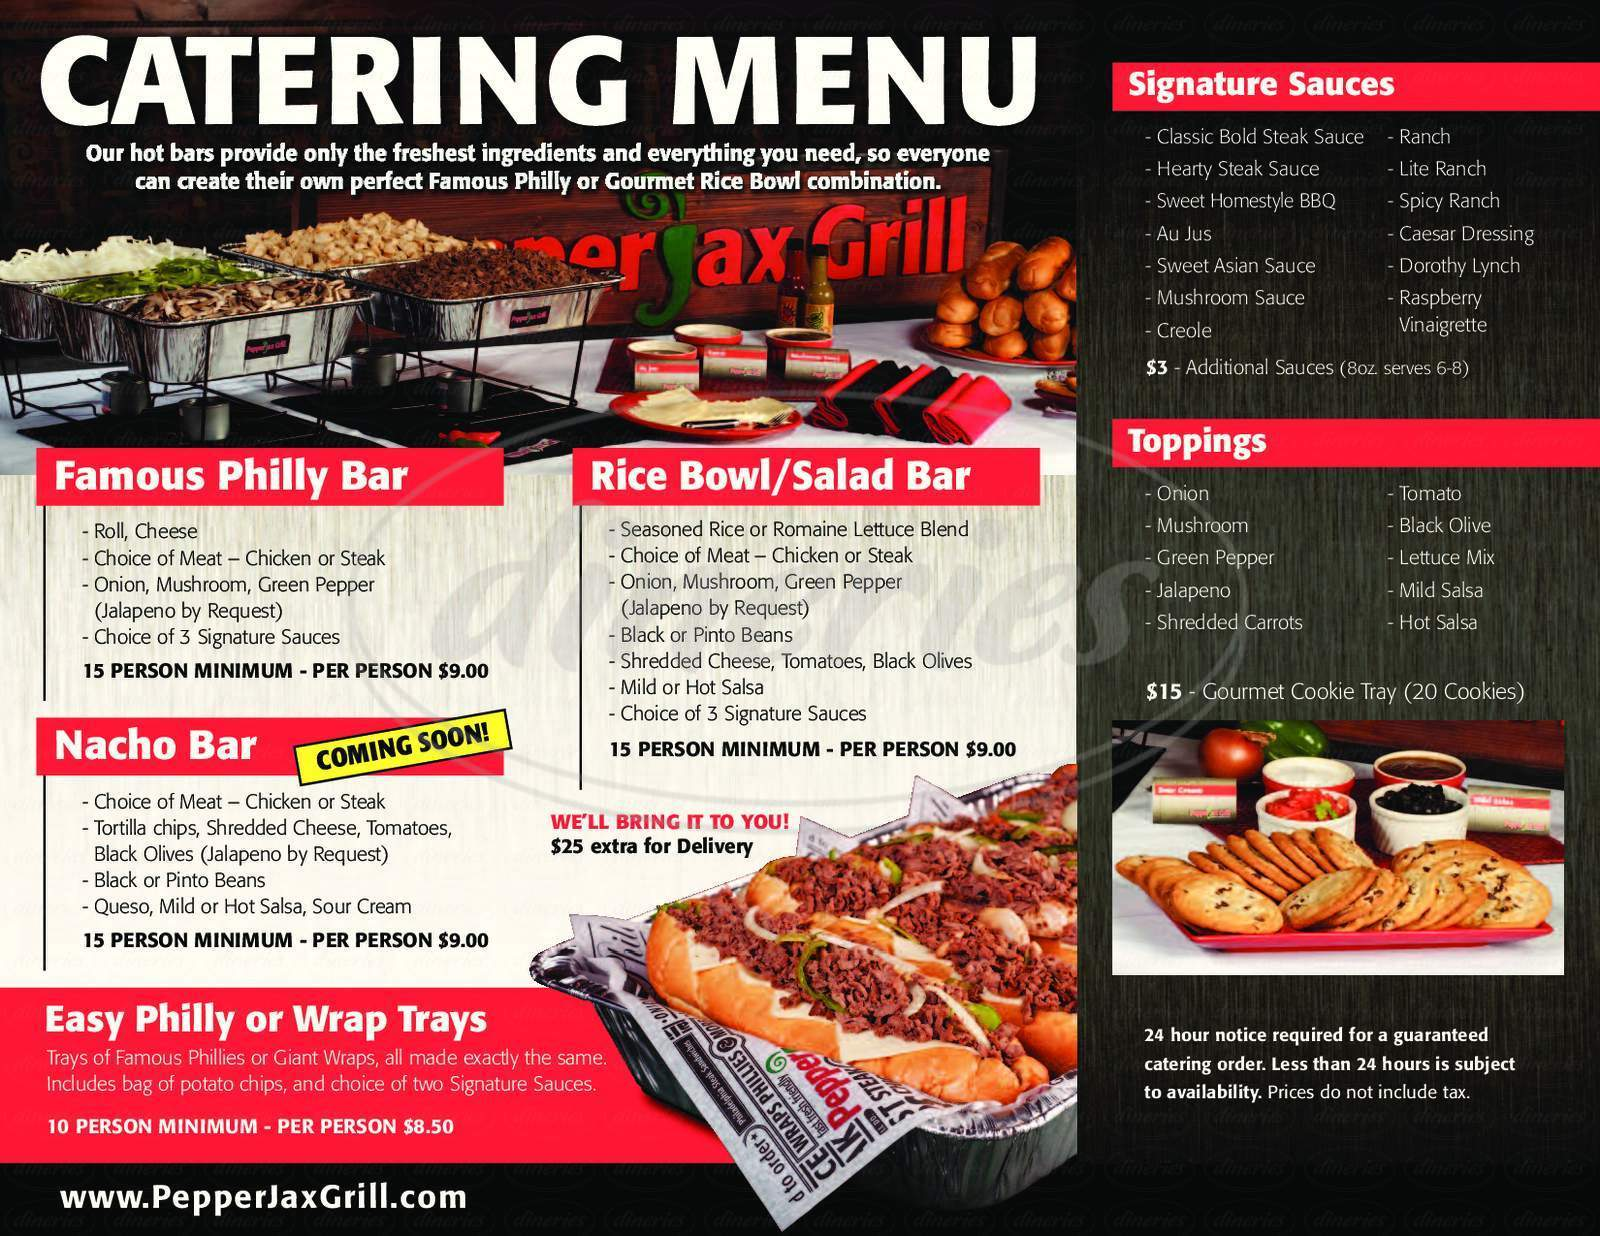 menu for PepperJax Grill